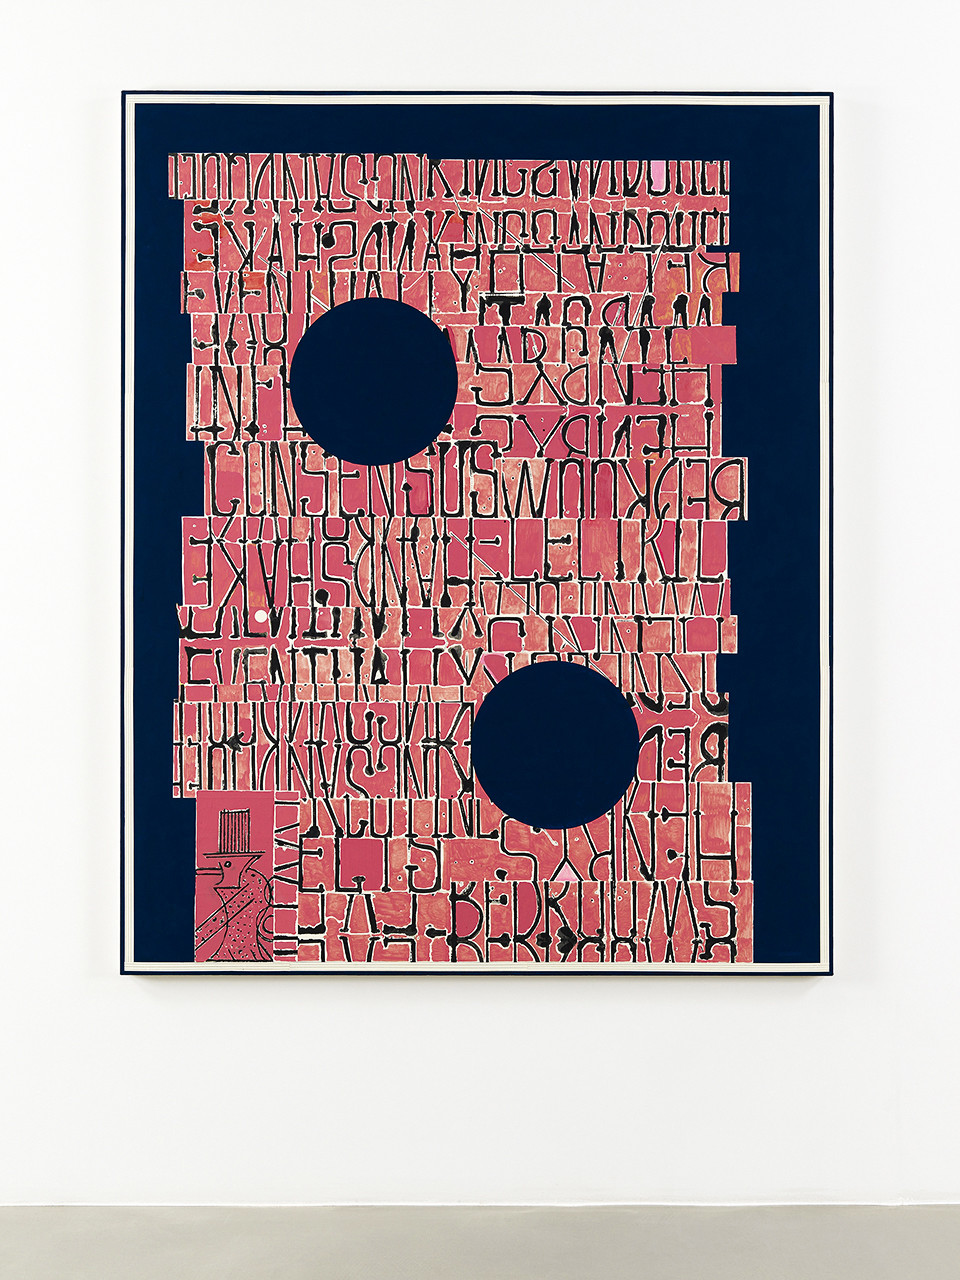 "<div class=""artwork_caption""><p>Word Painting (Consensus), 2016</p></div>"